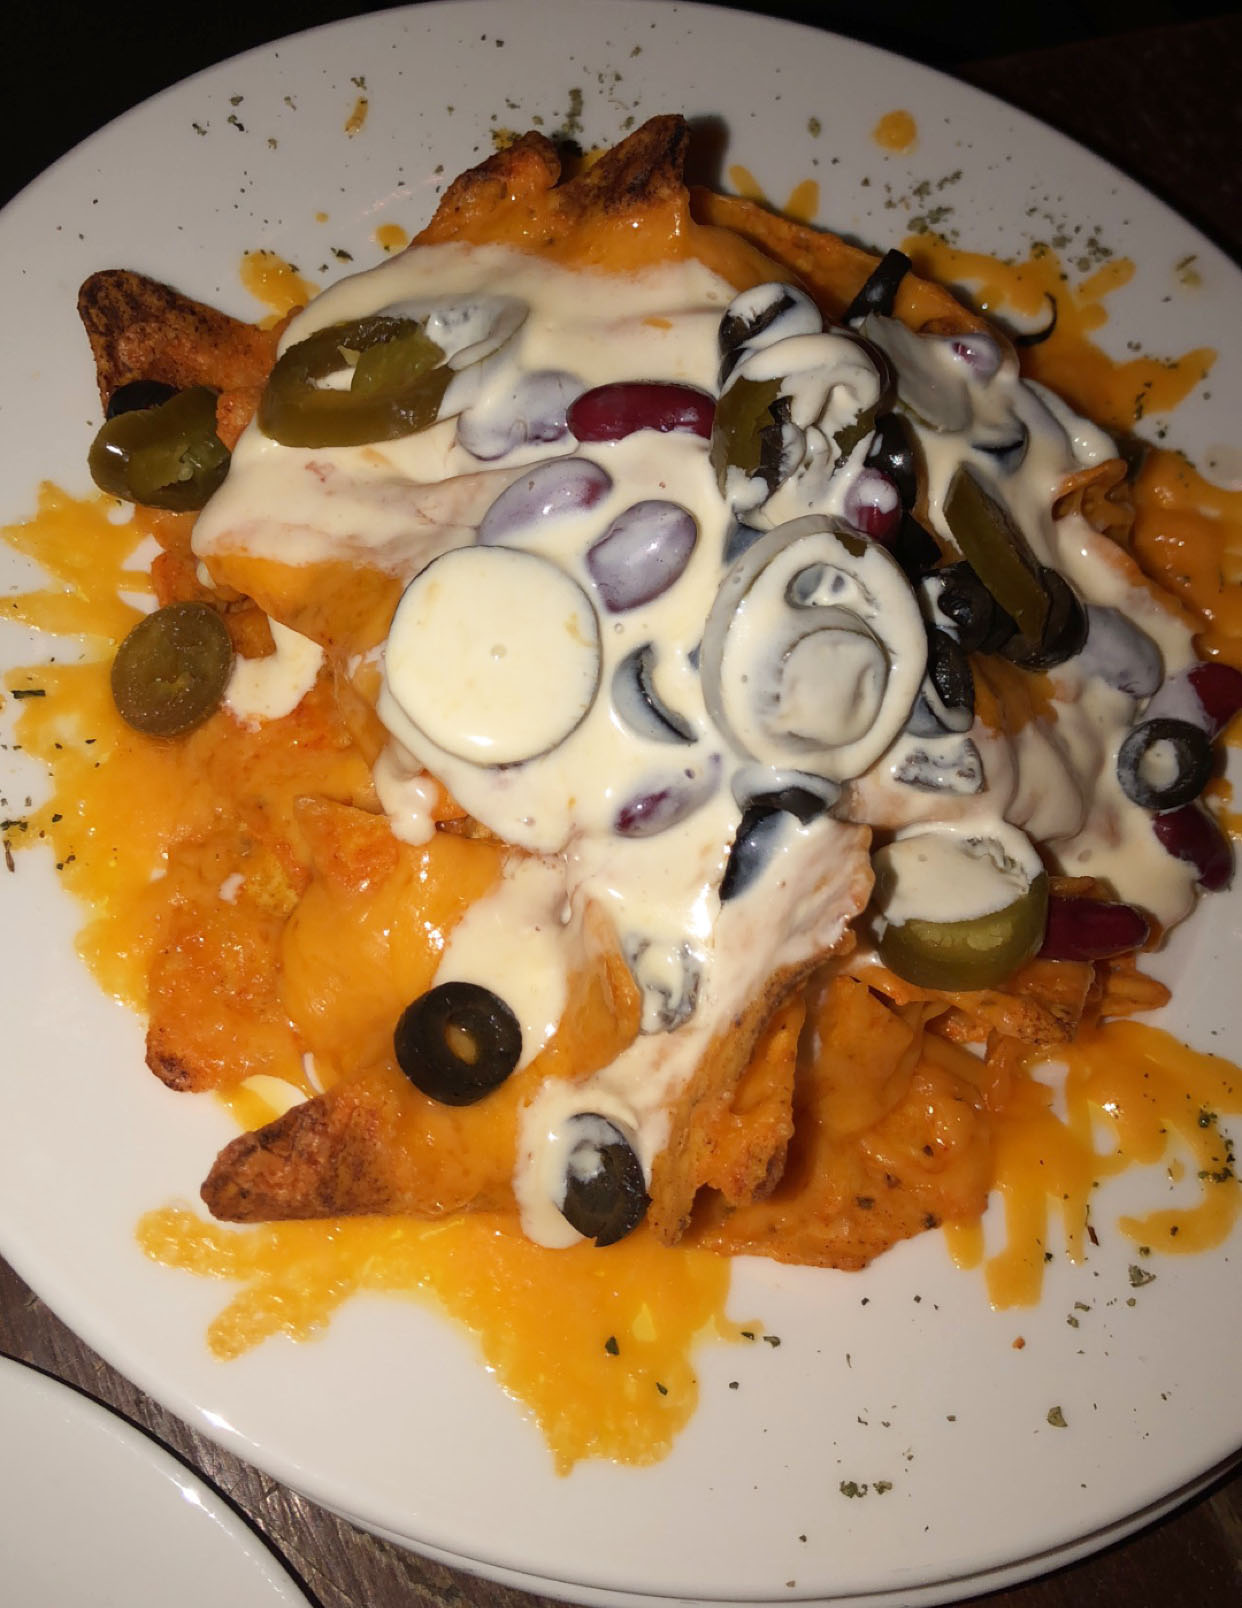 More nachos! These are from the Rustic Eatery in Weibdah. Photo credit: Arguin, 2019